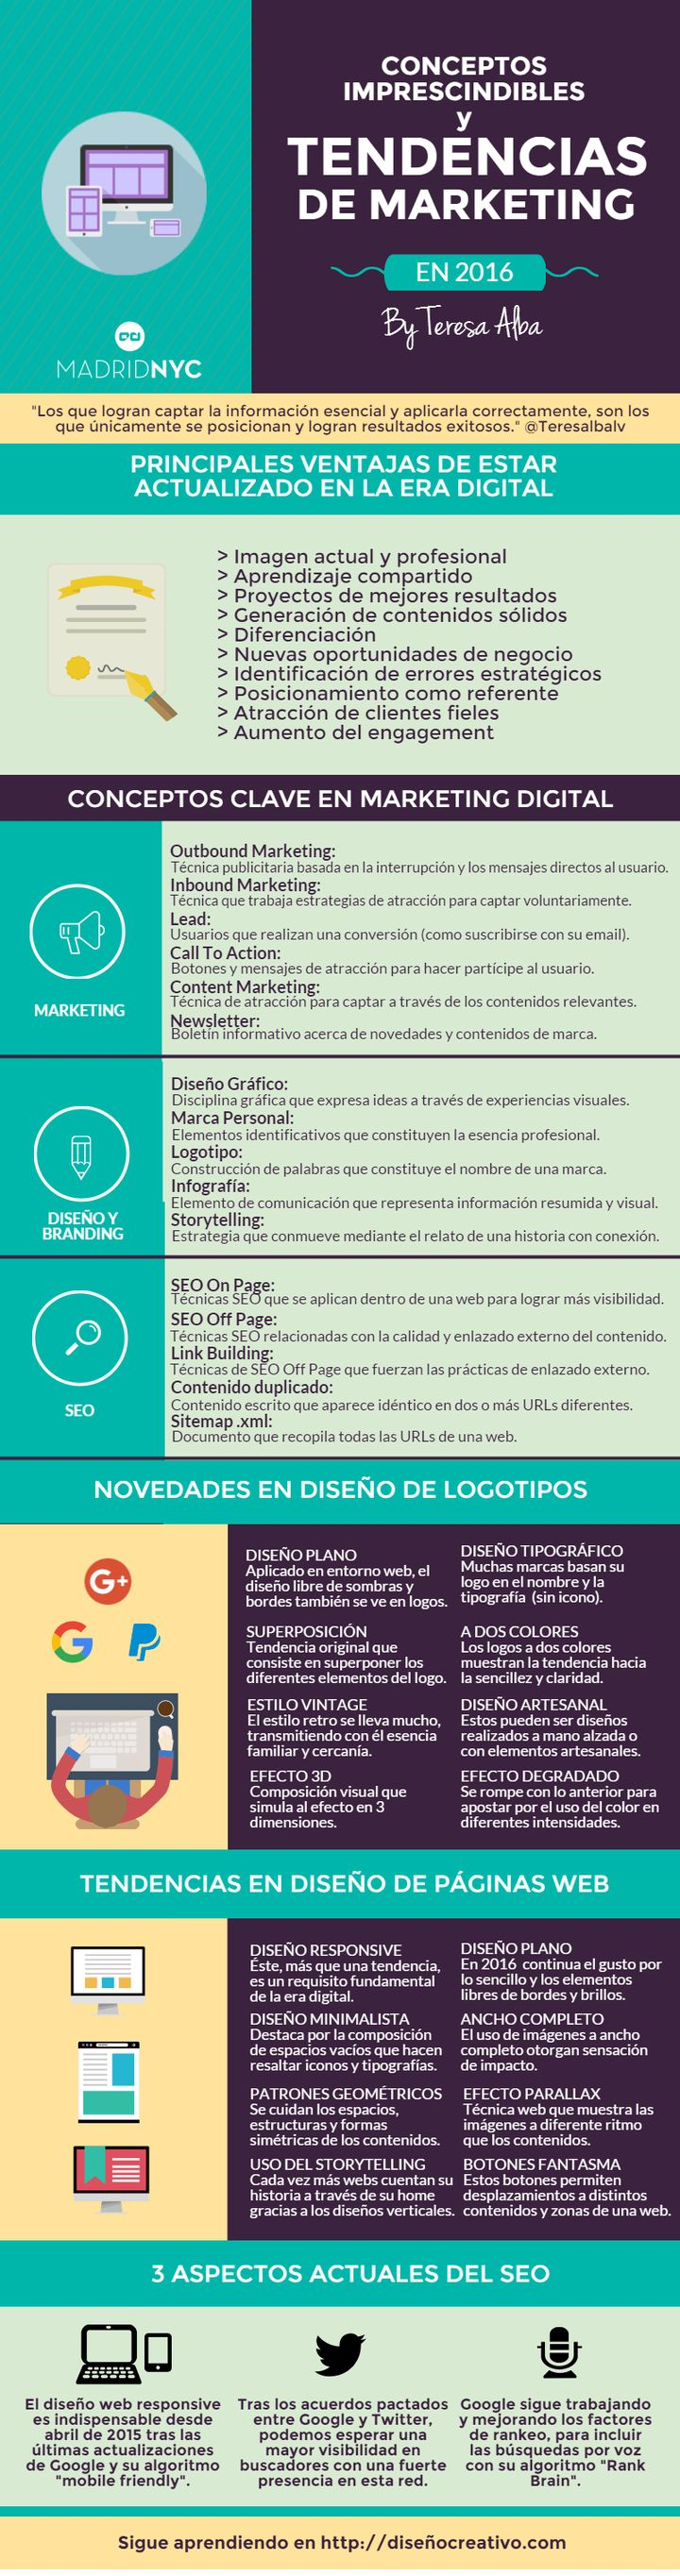 Conceptos imprescindibles y tendencias en marketing #infografía #infographic #marketing